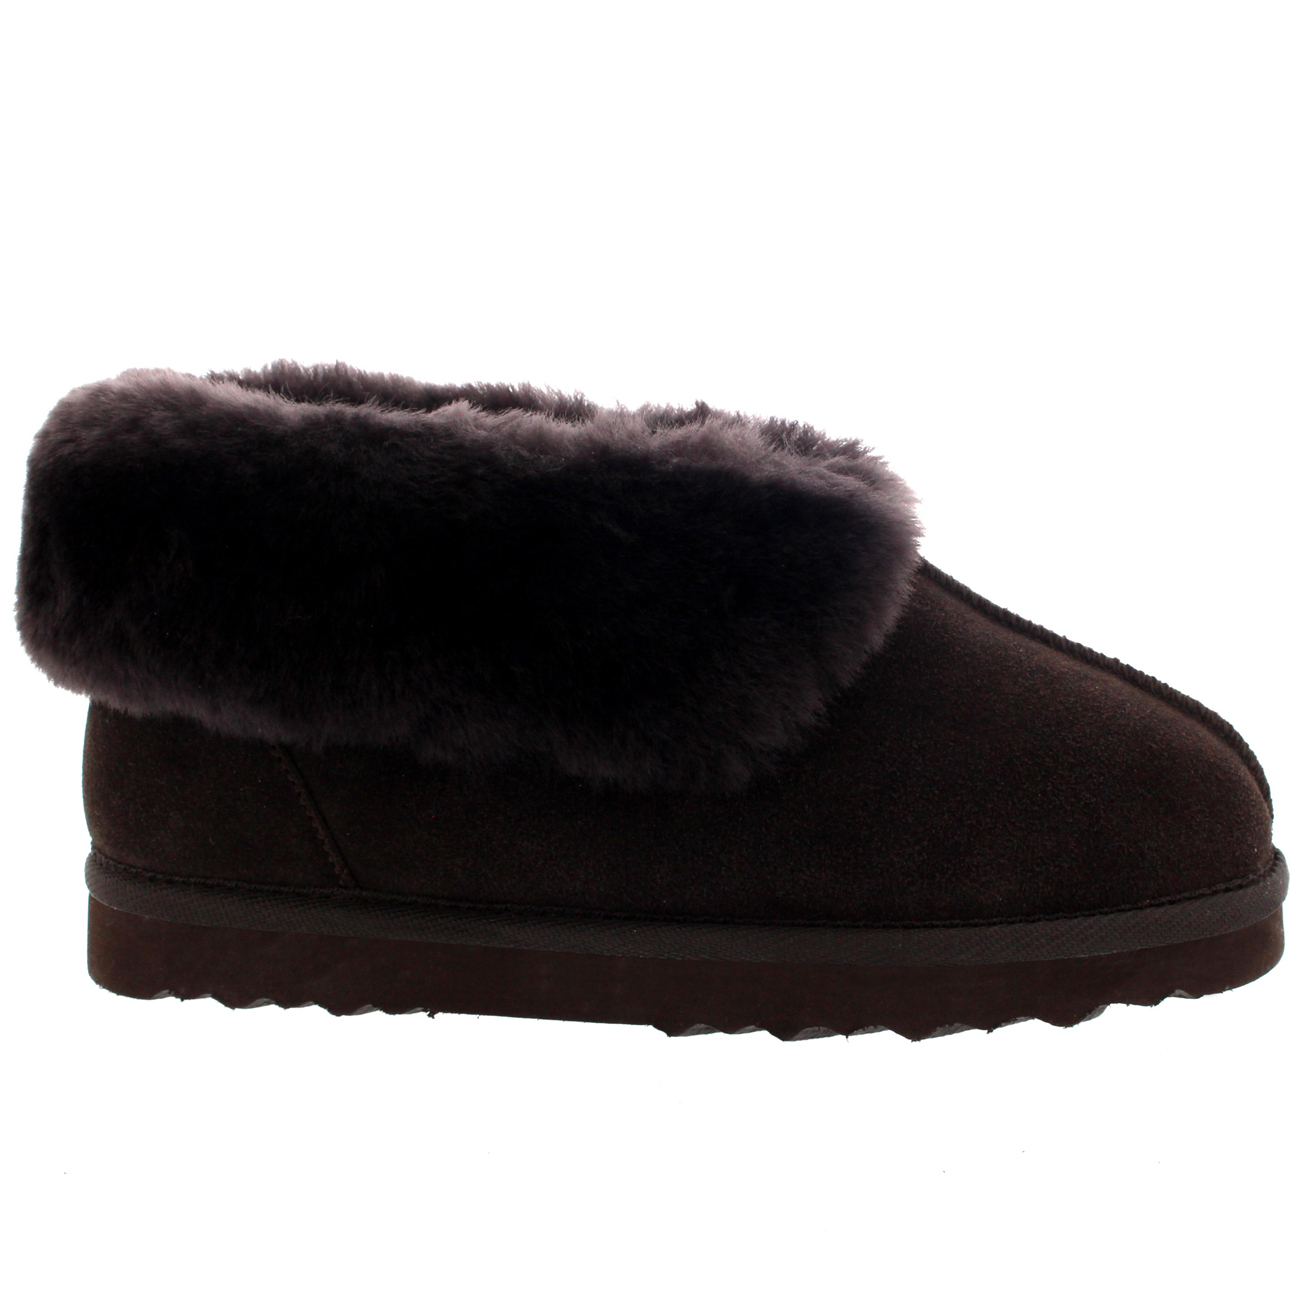 Womens Real Suede Australian Sheepskin Fur Lined Warm House Slipper Boots 3-10 | eBay